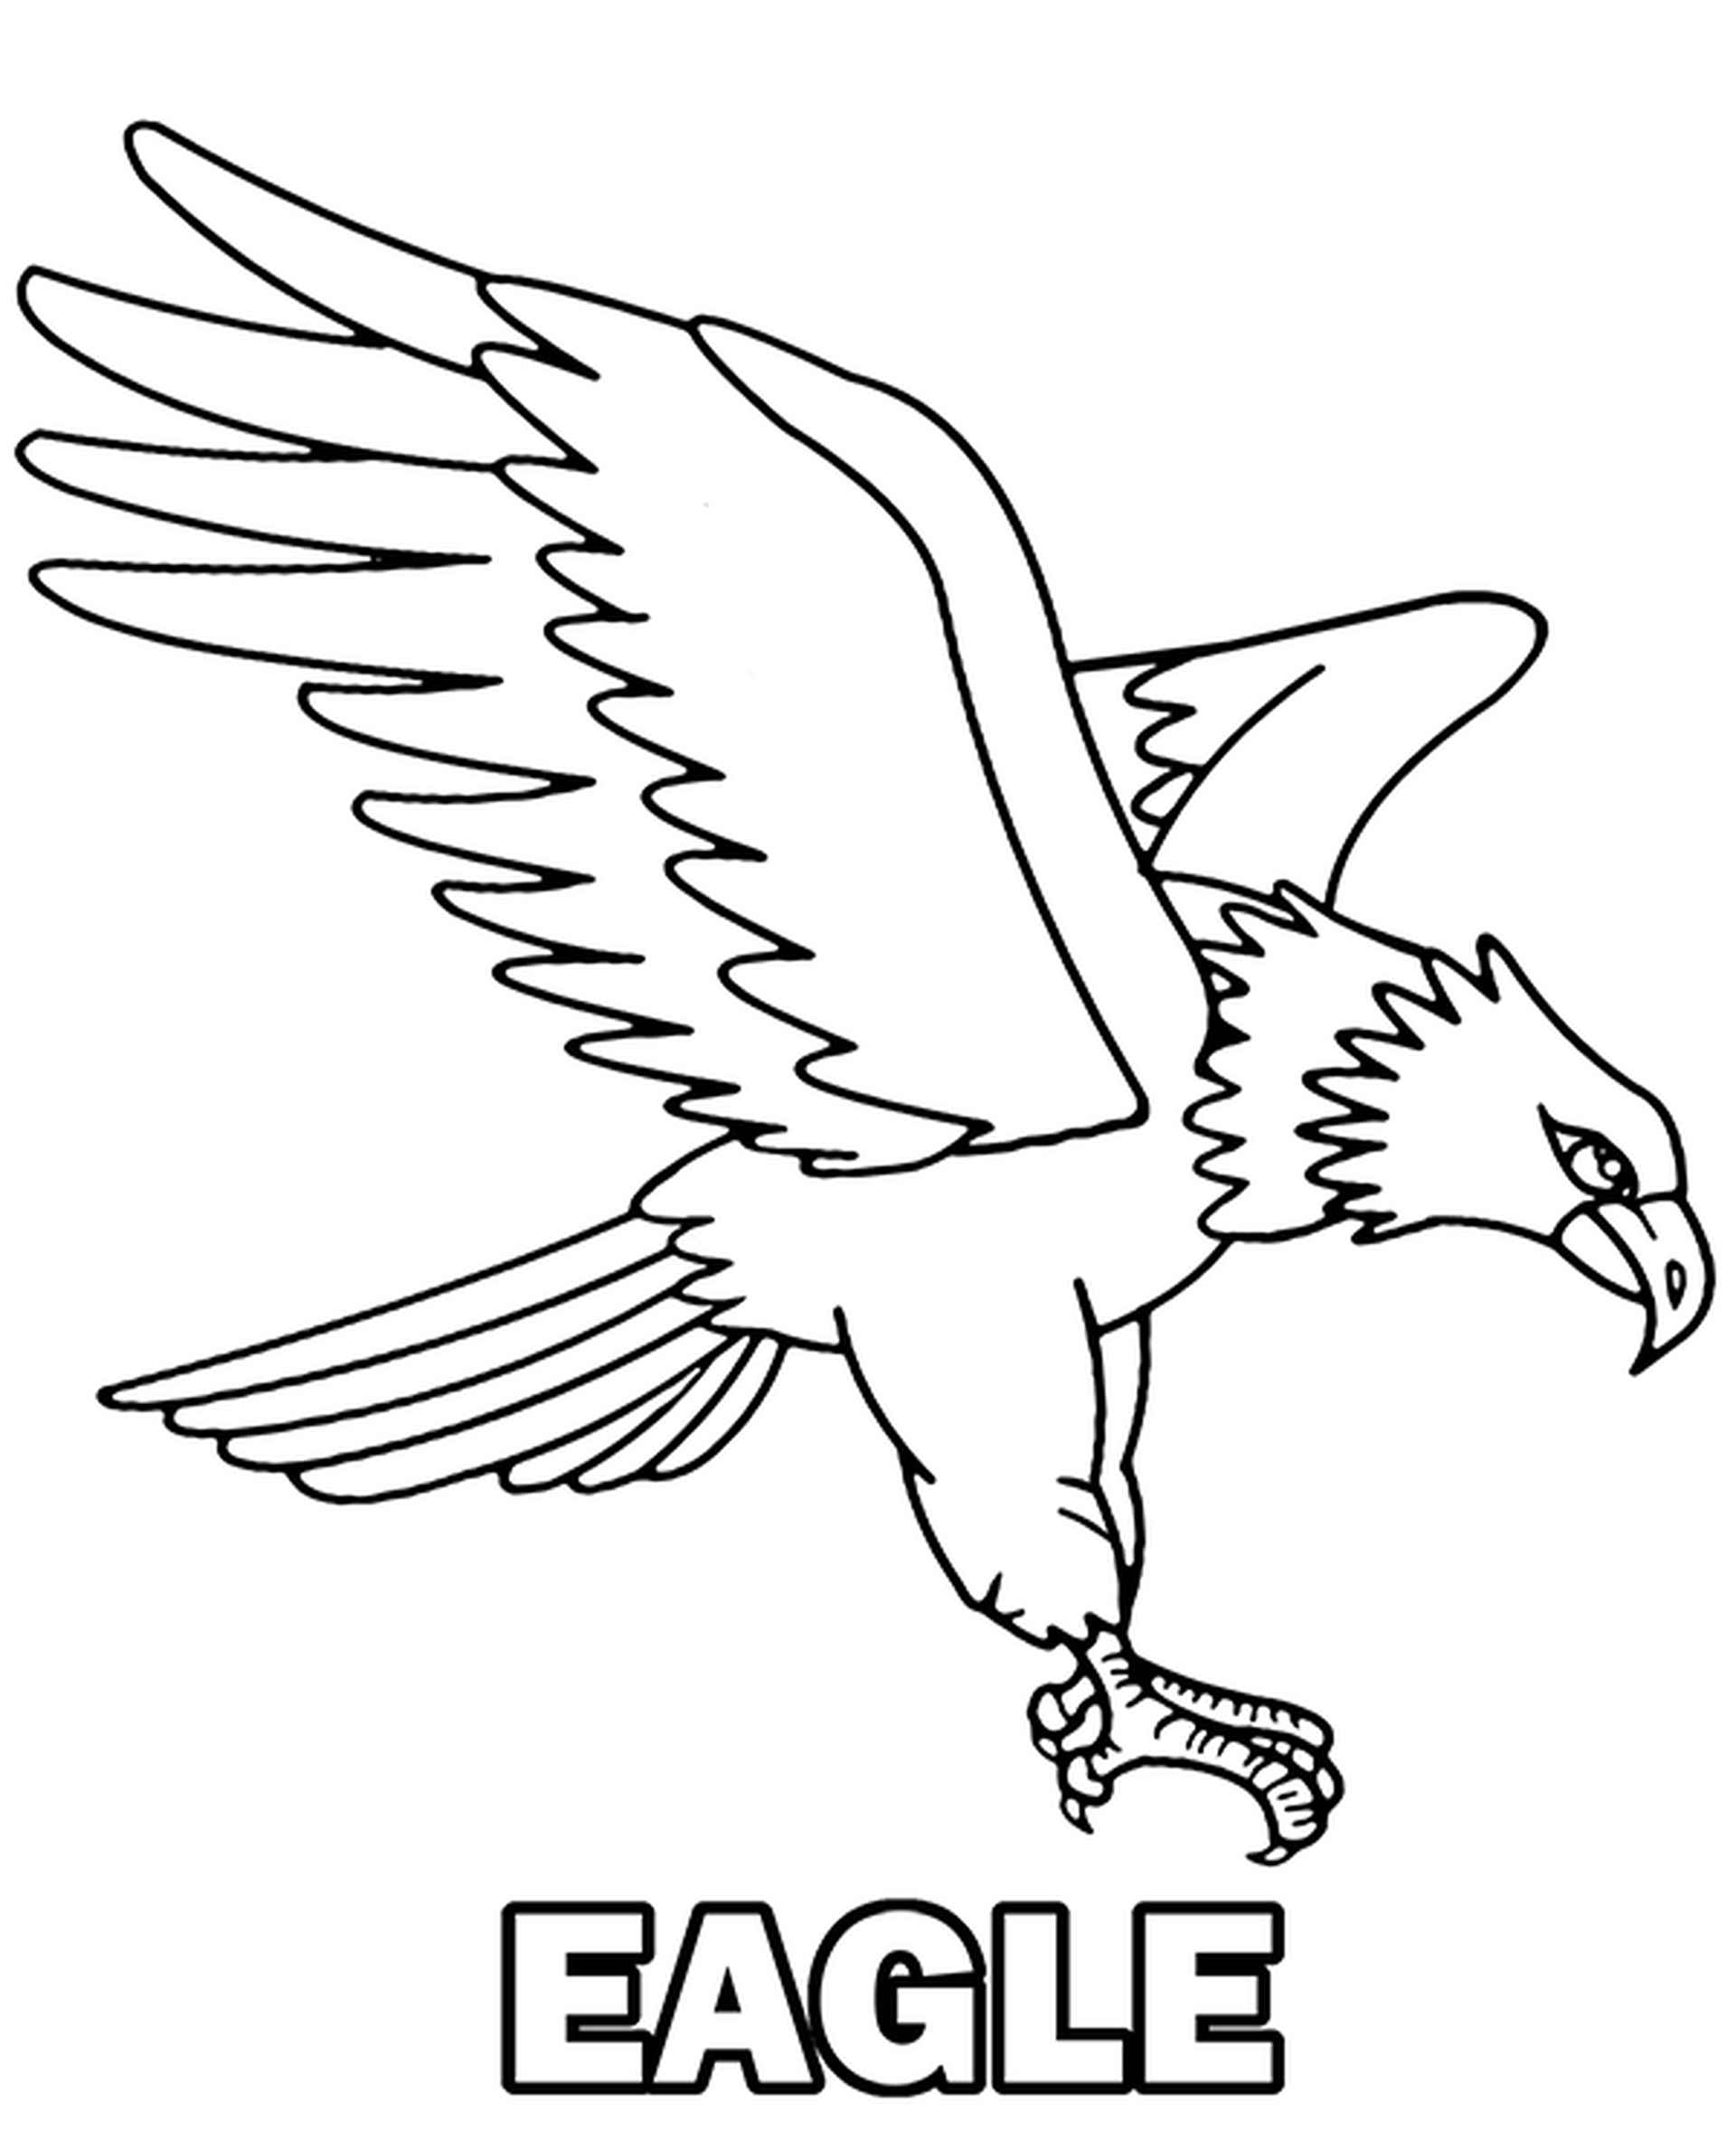 Hunting Eagle Coloring Sheet